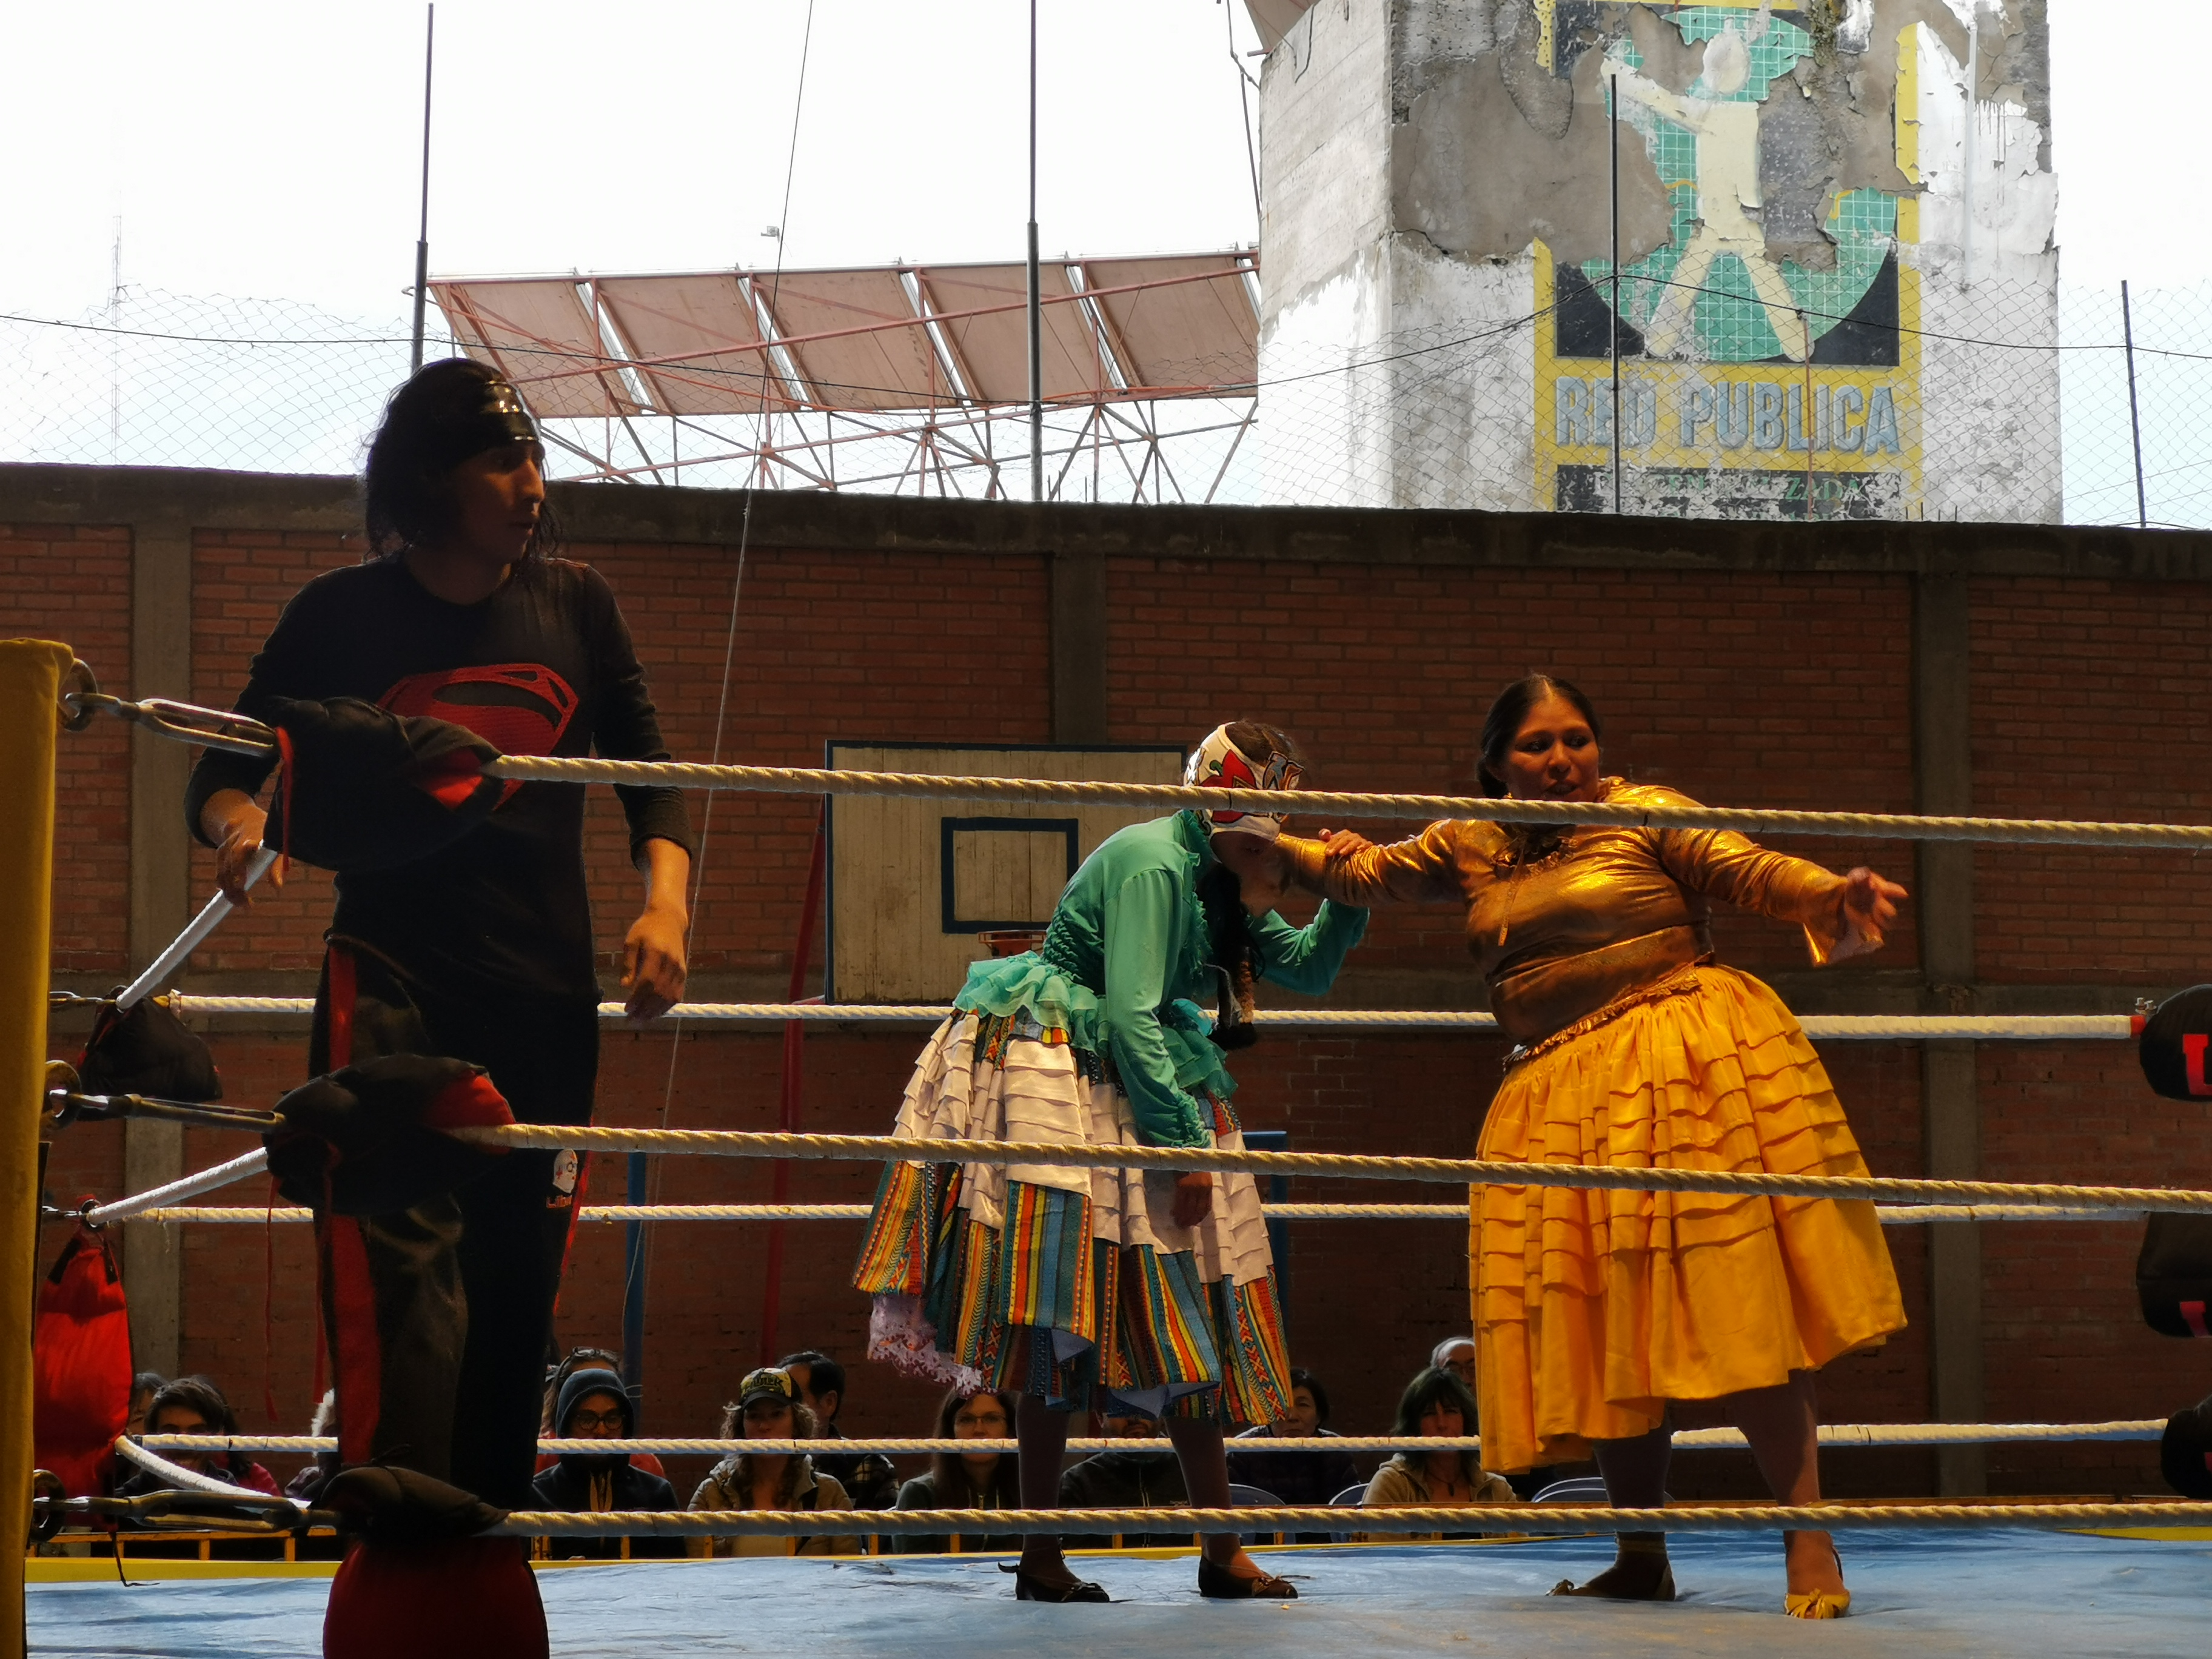 Cholitas in traditional outfit wrestling in a ring